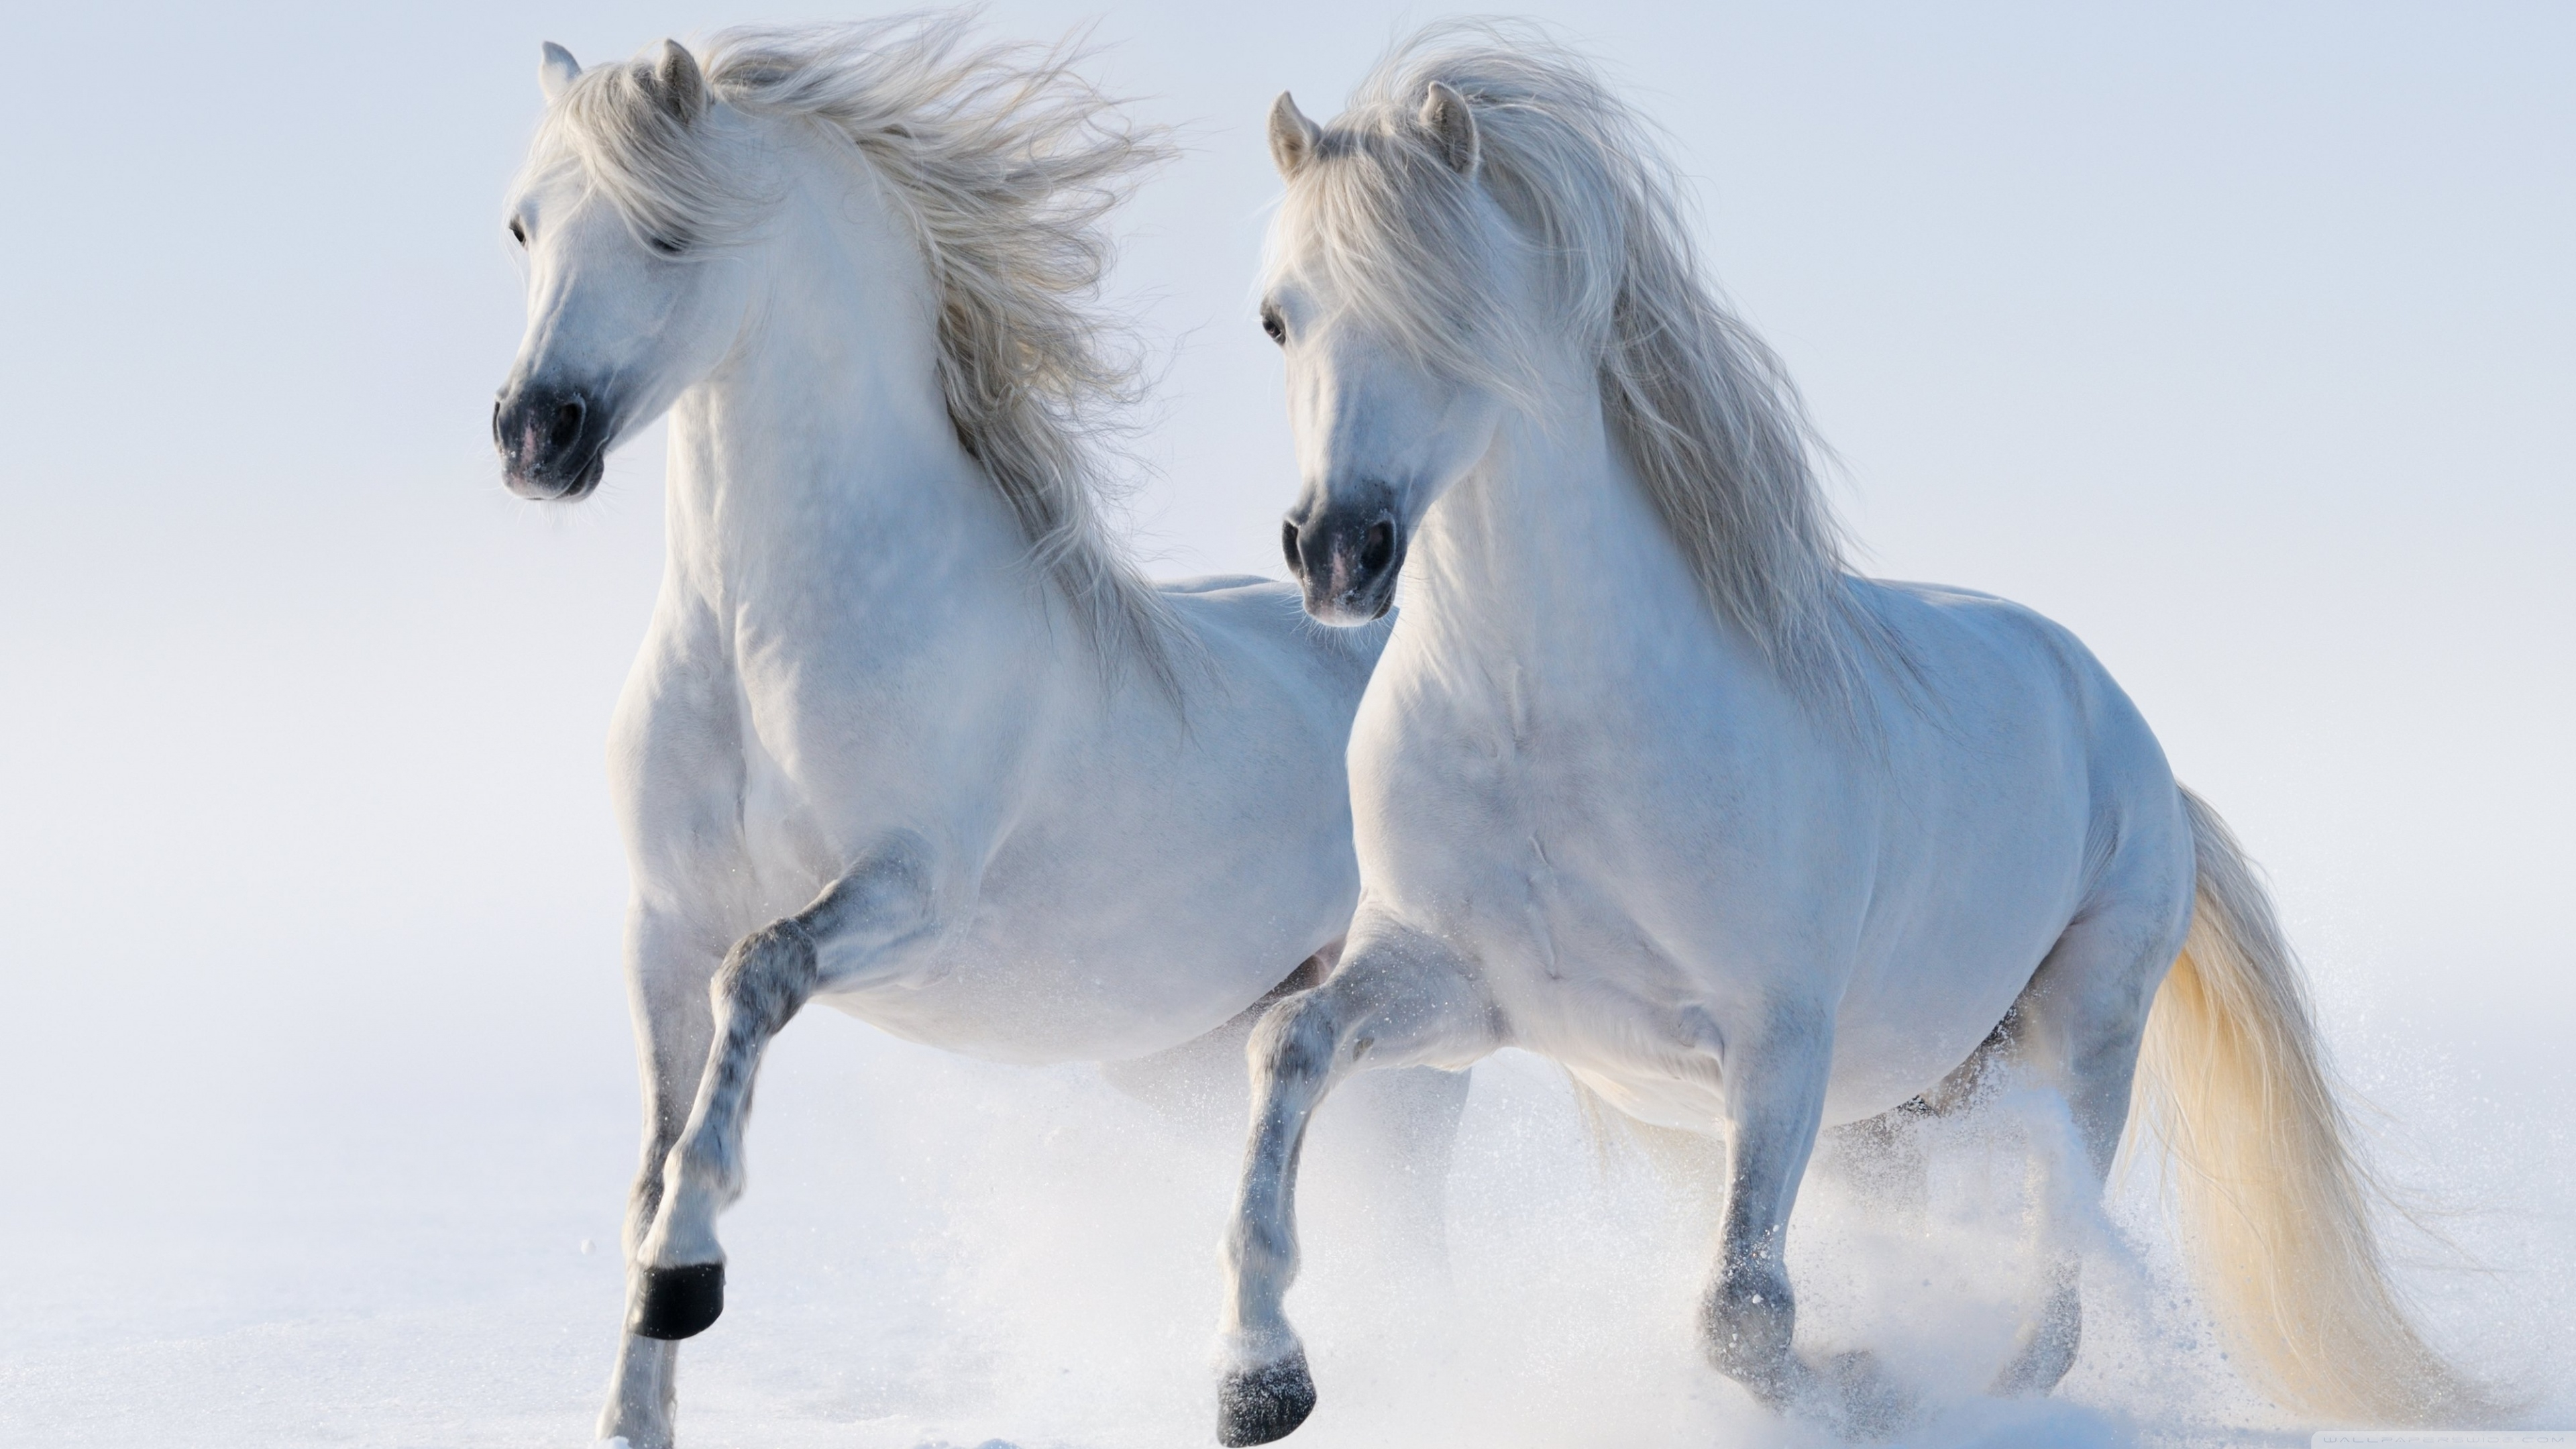 2 horses ❤ 4k hd desktop wallpaper for 4k ultra hd tv • wide